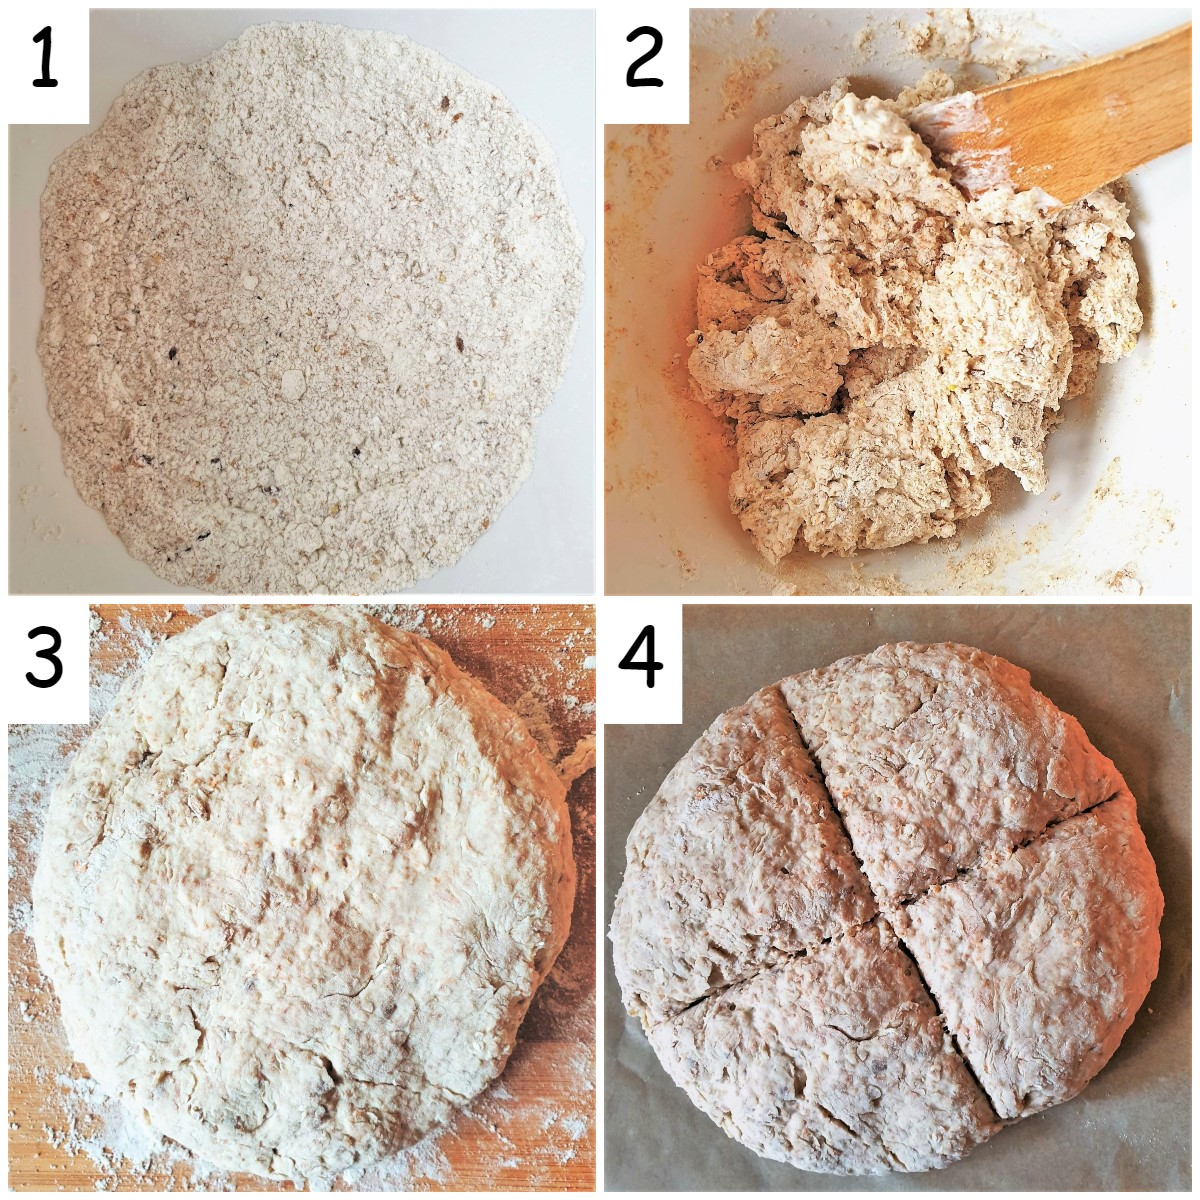 Four images showing how to make wholemeal bread.